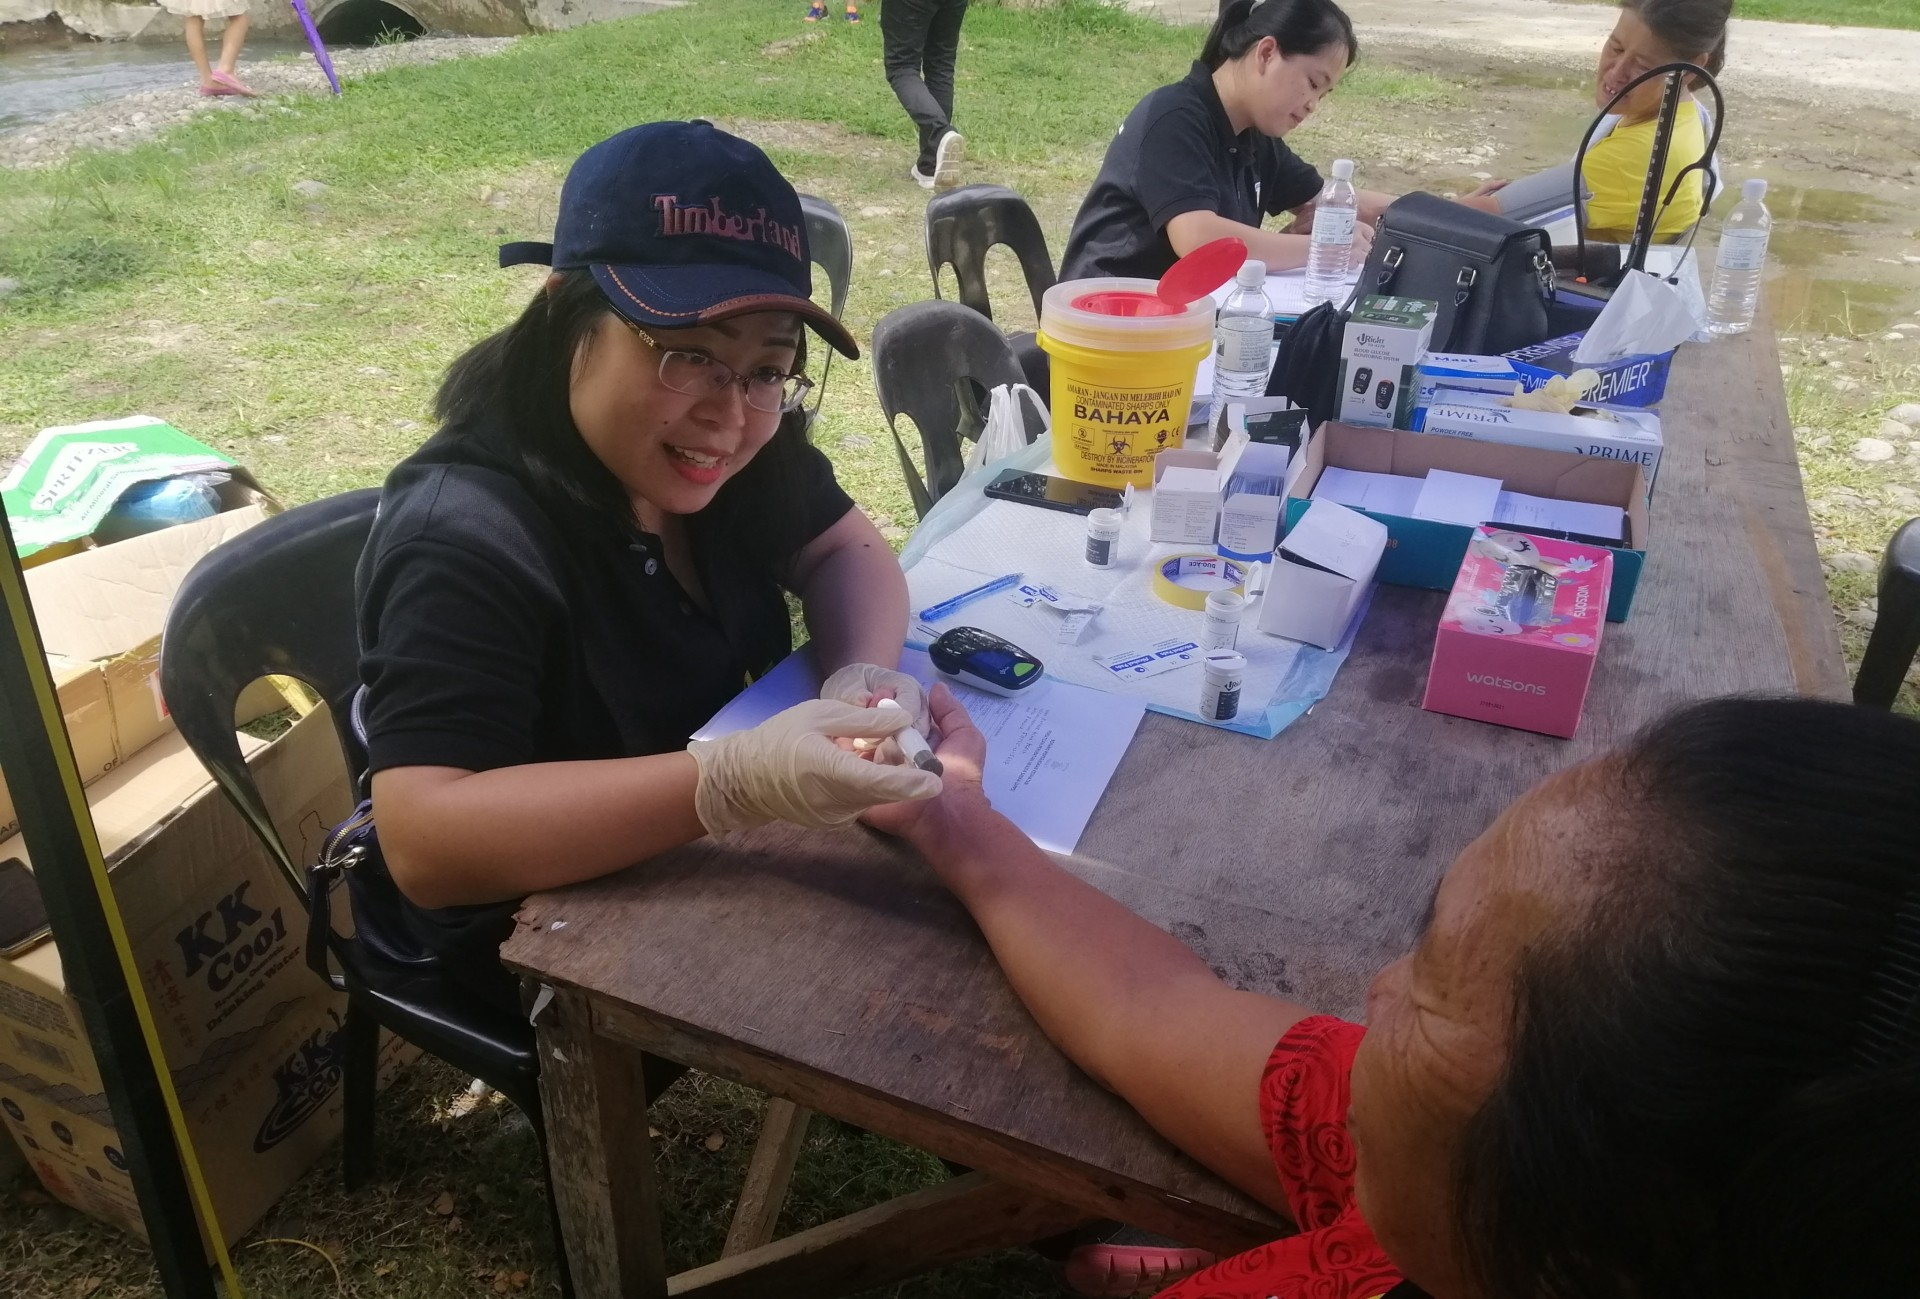 A nurse pricks a patient's finger to test for blood type. All the tests and medications at the camp were free for the patients.